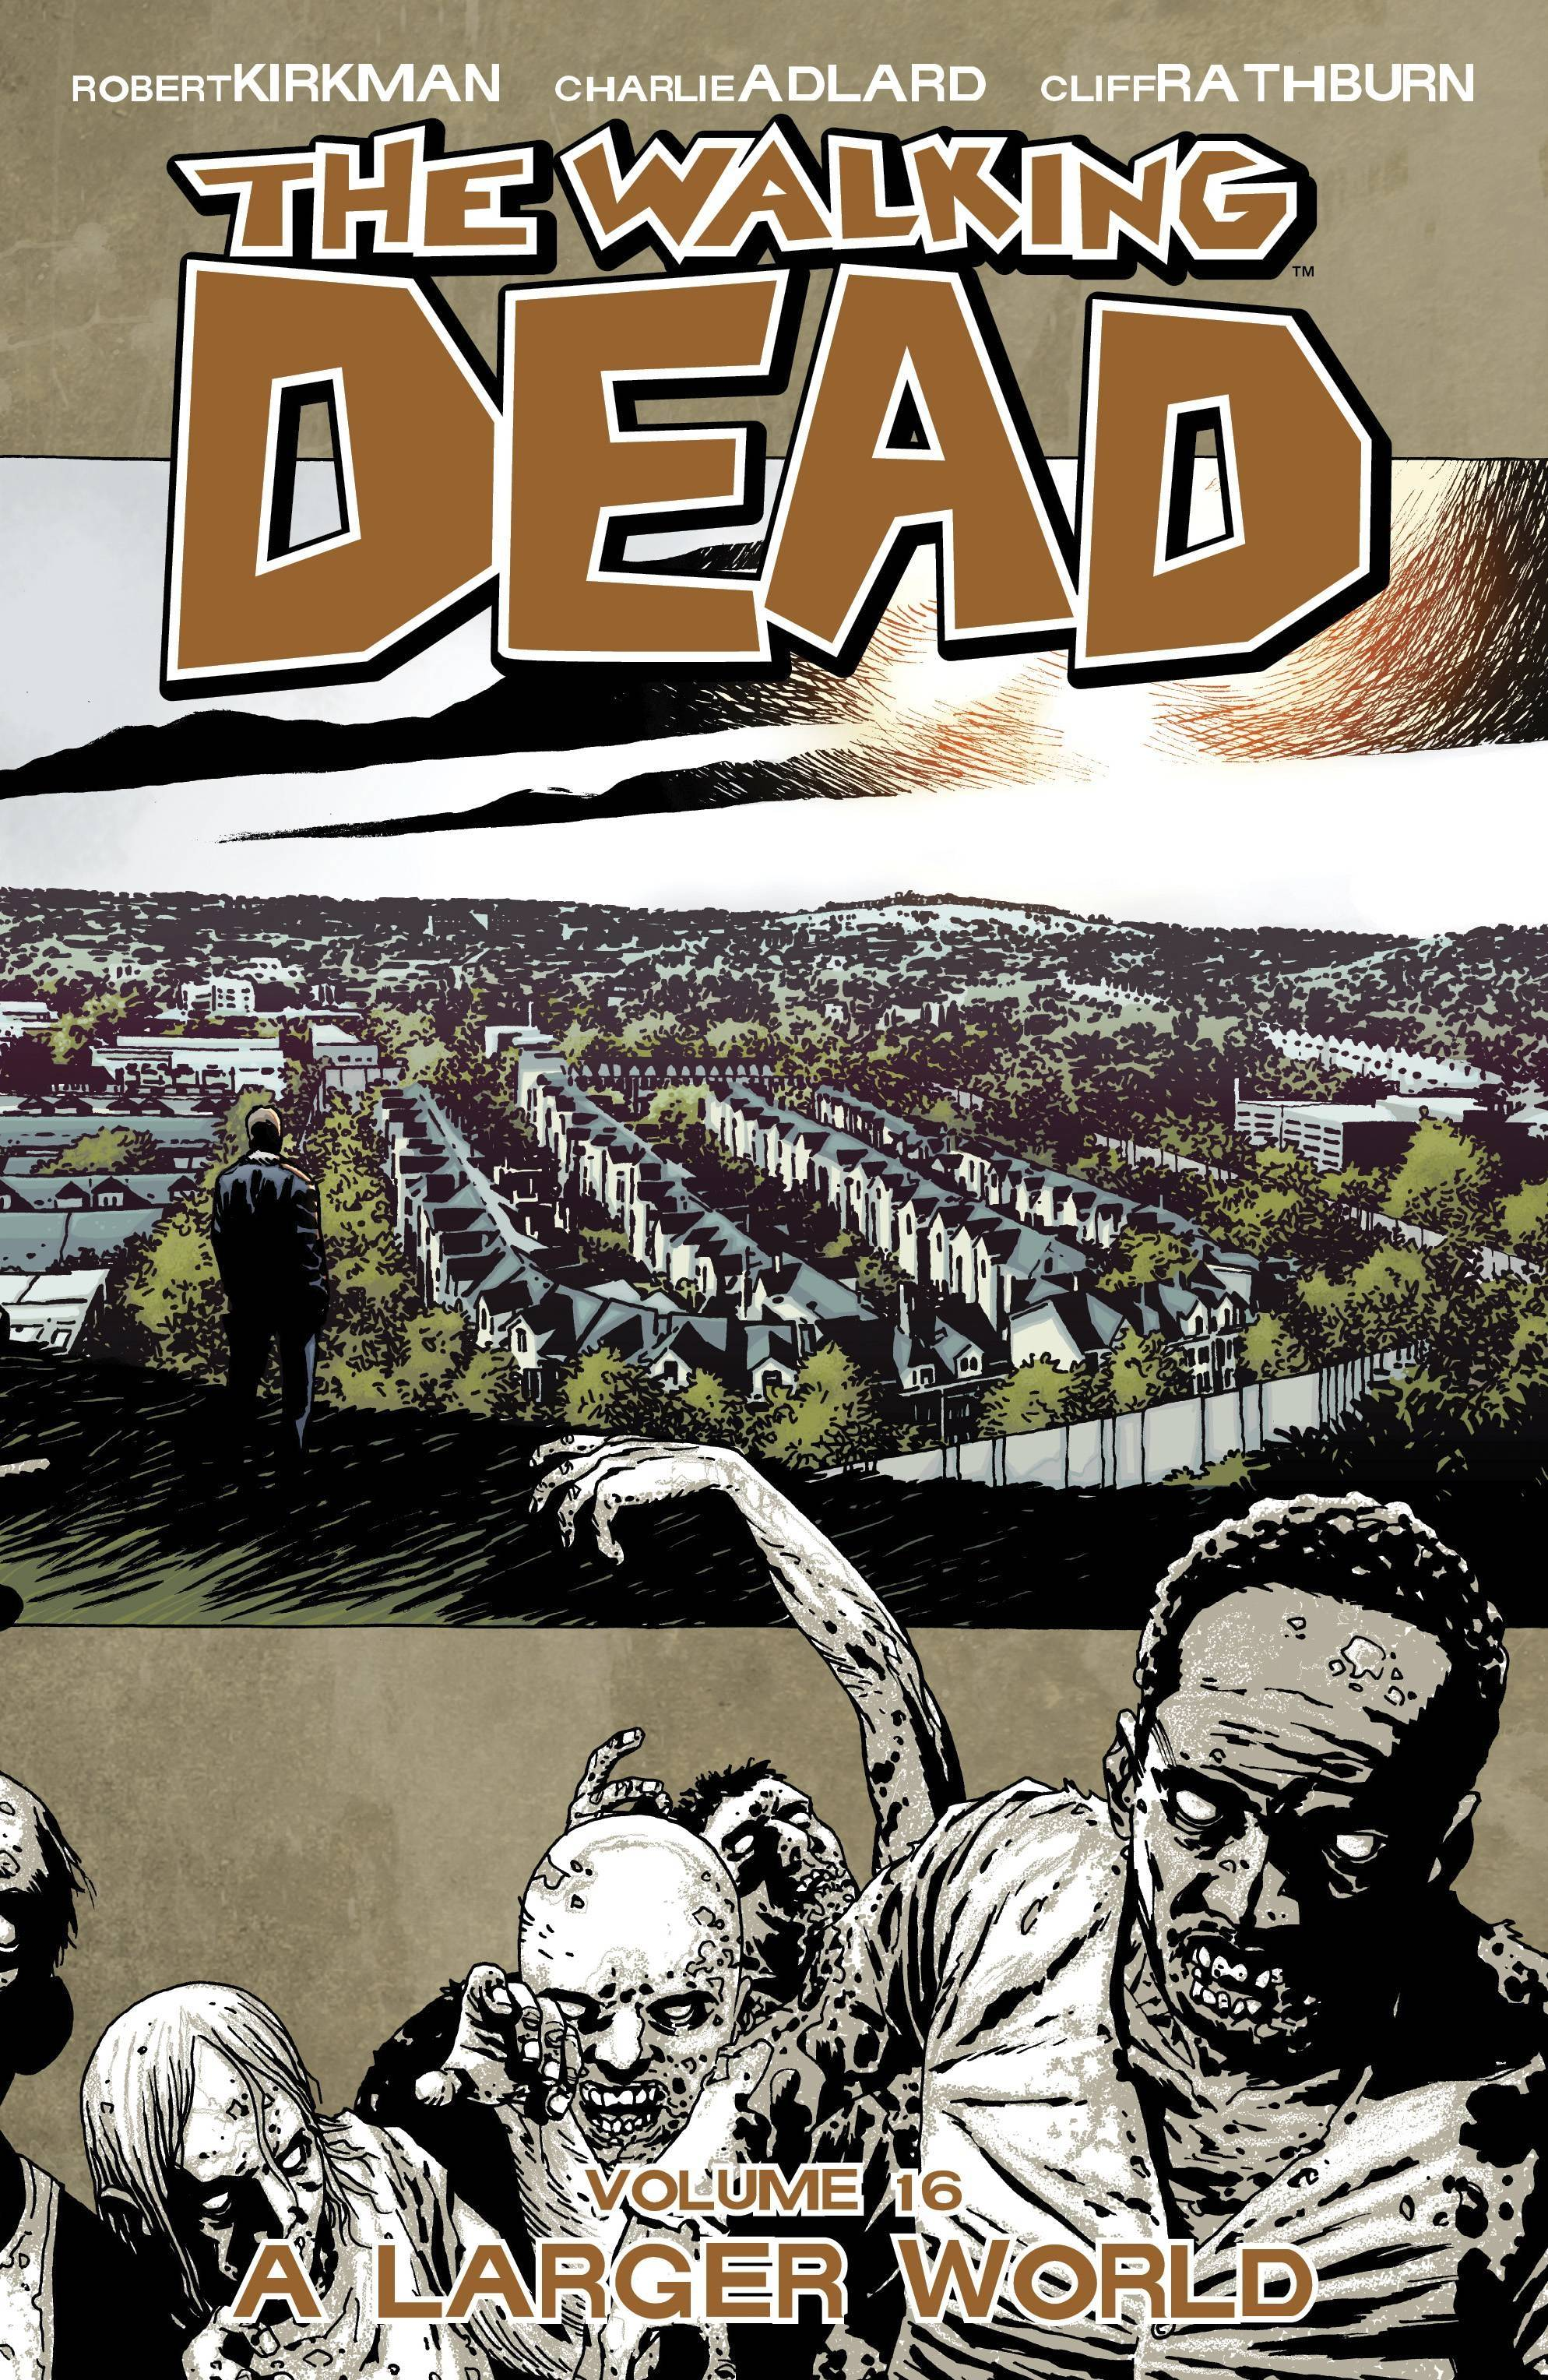 WALKING DEAD TP VOL 16 A LARGER WORLD (APR120487) (MR)